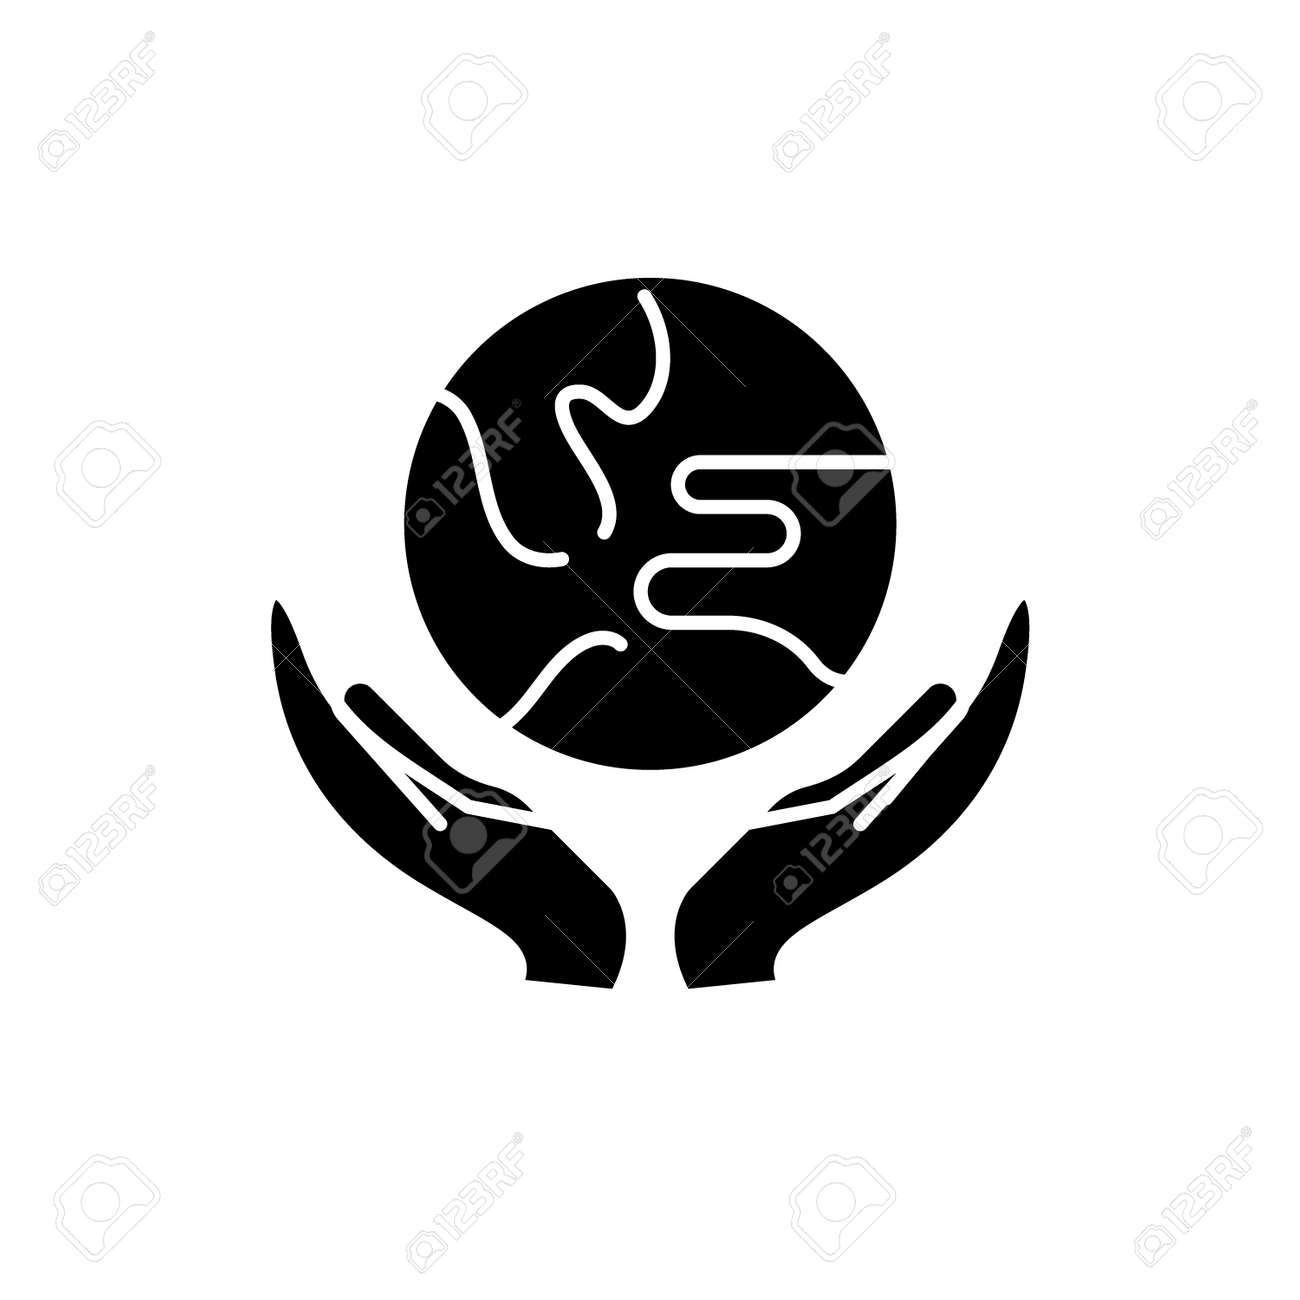 Humanity Black Icon Concept Vector Sign On Isolated Background Royalty Free Cliparts Vectors And Stock Illustration Image 127290278 Download 154,010 human icon free vectors. humanity black icon concept vector sign on isolated background